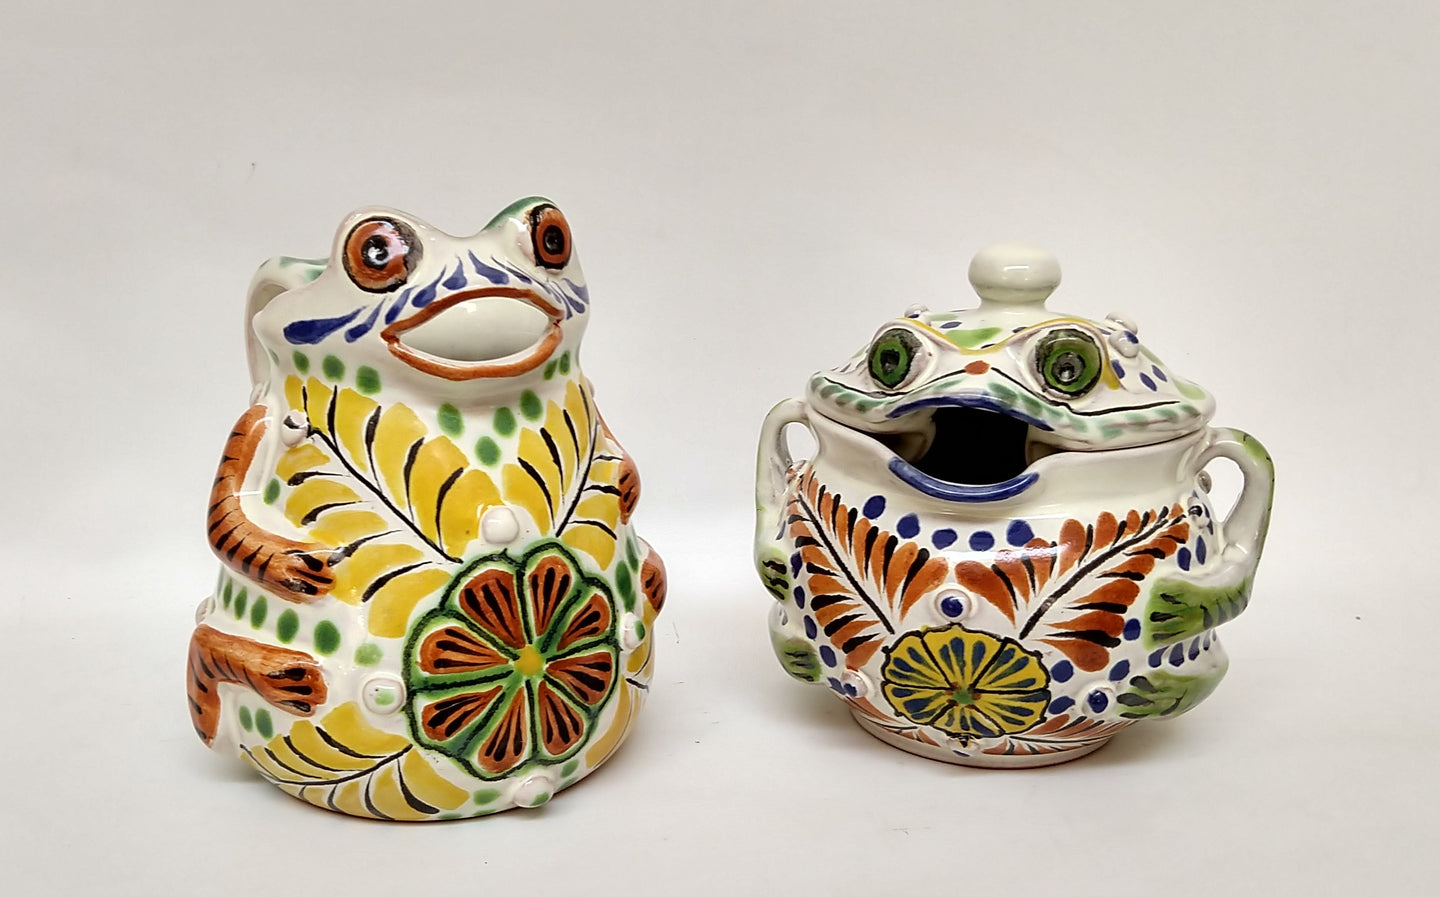 Frog Set Creamer and Sugar